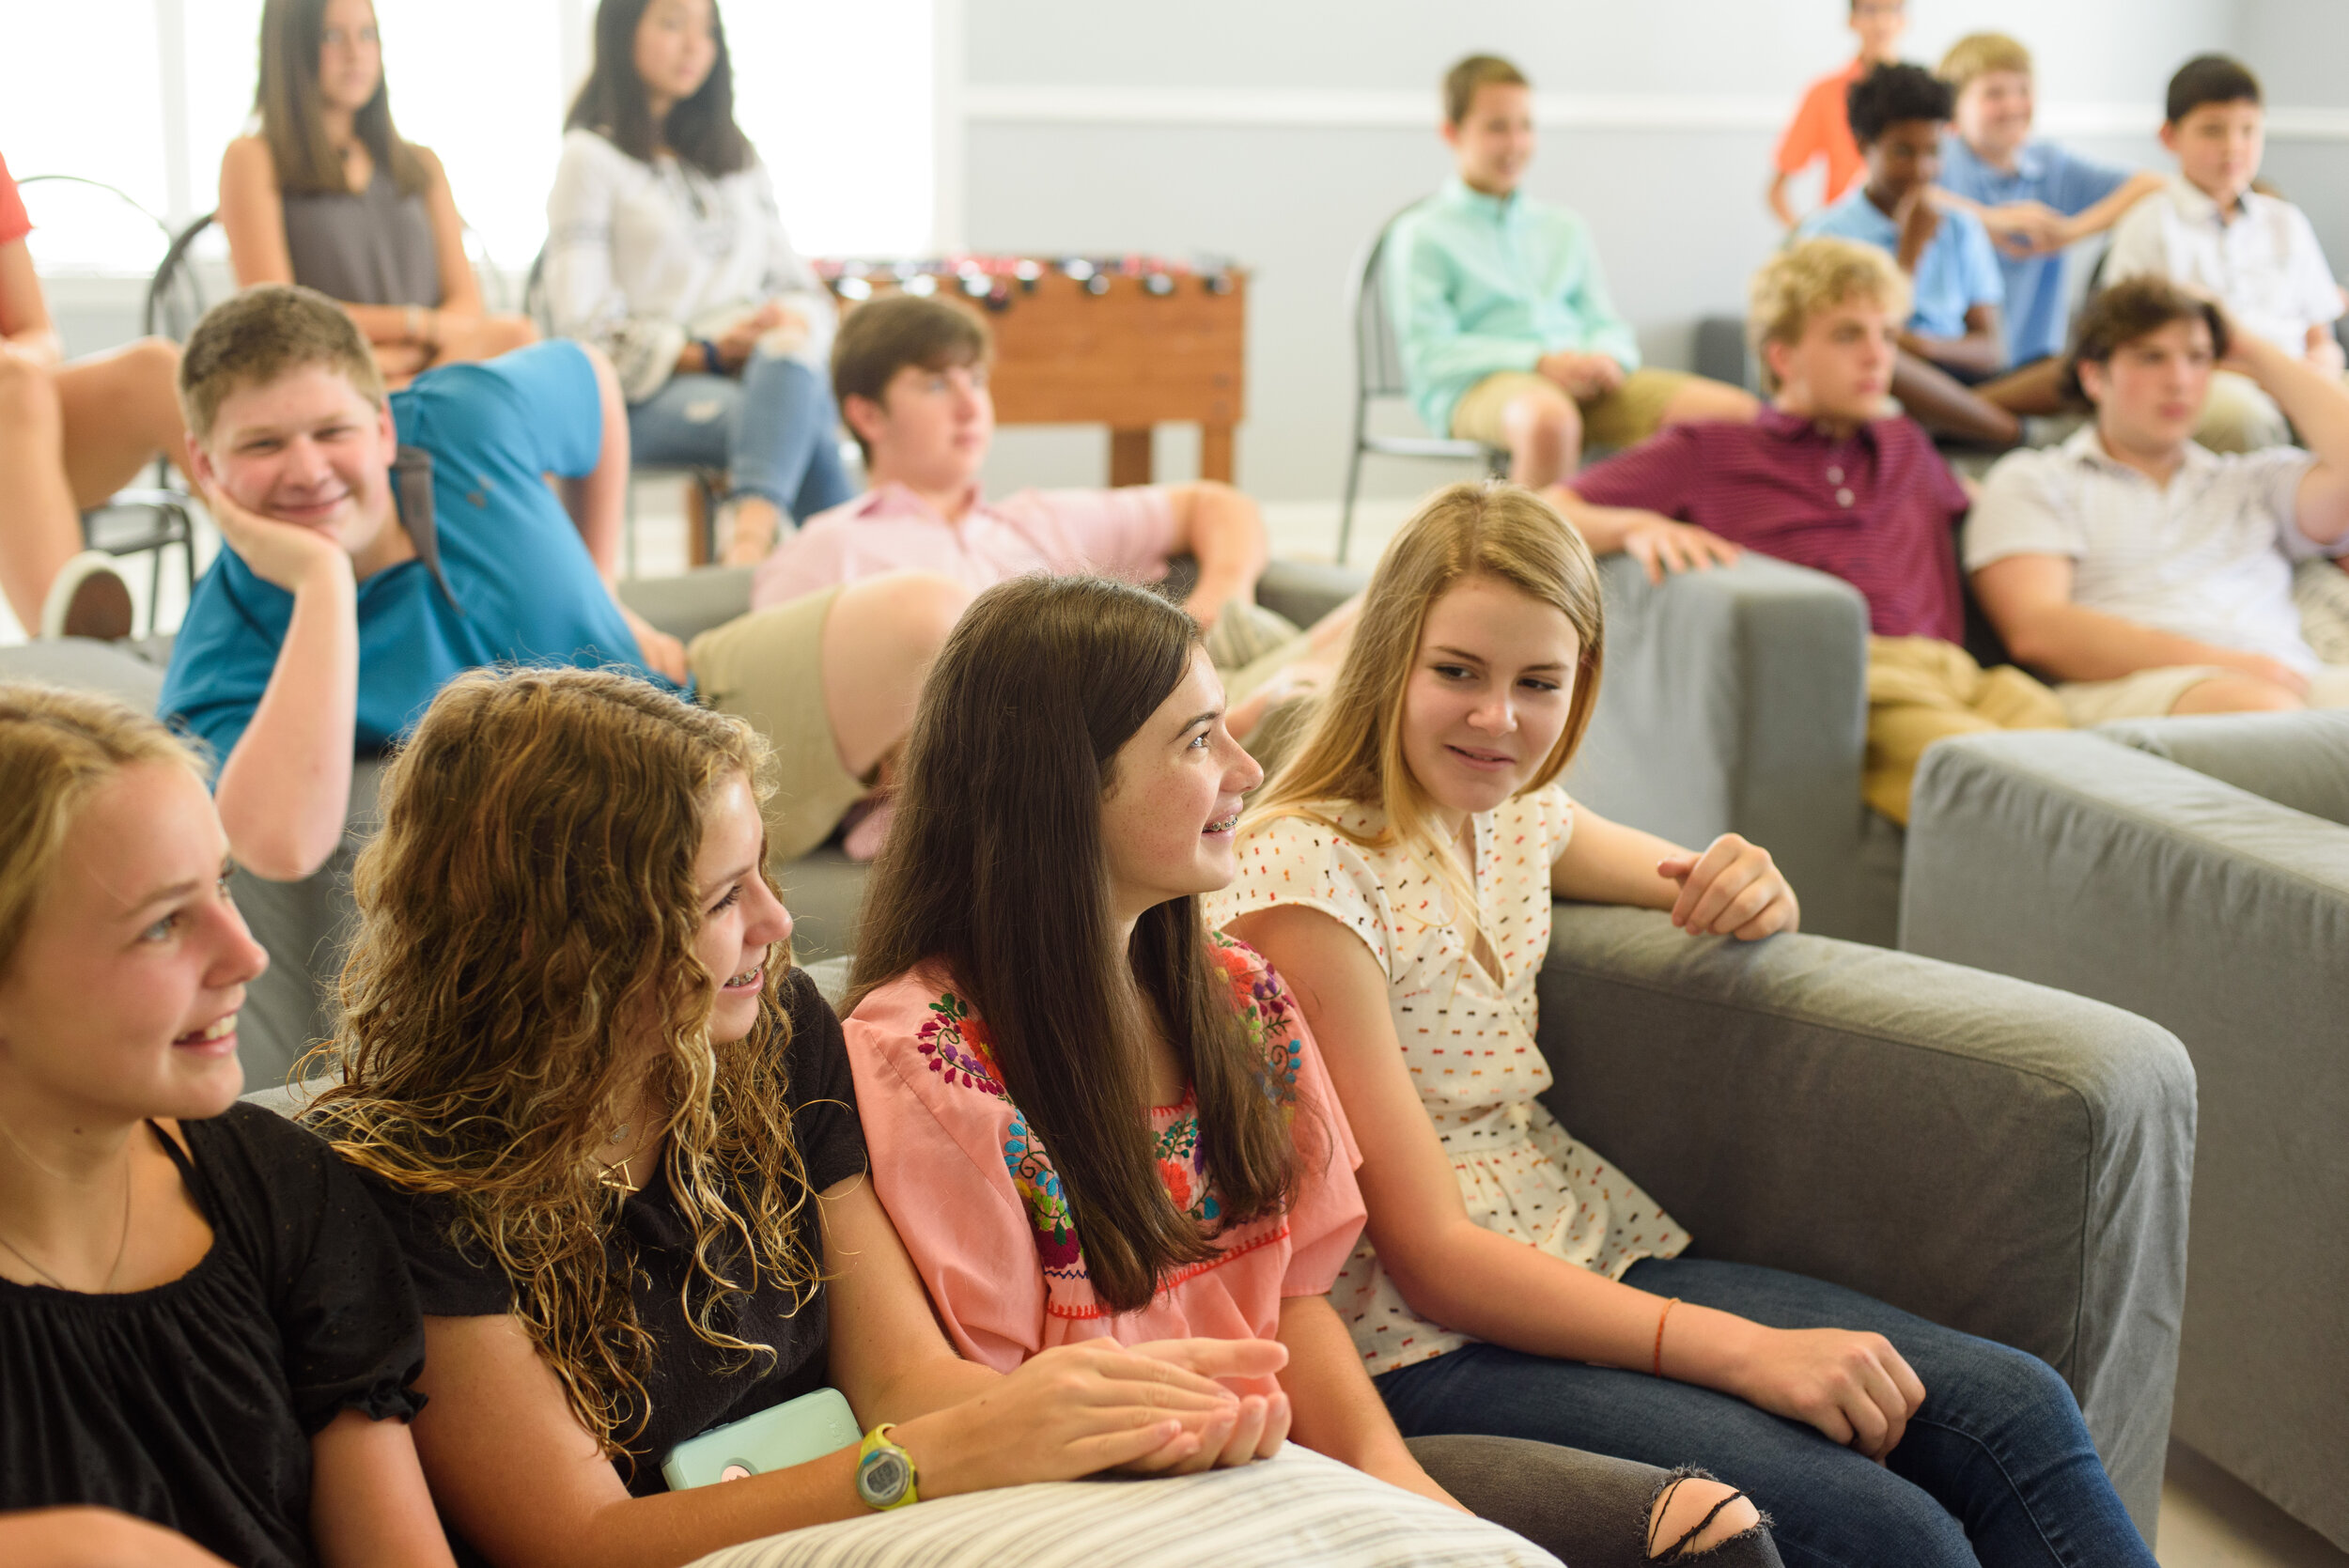 Sunday School - Make new friends, hang out with old friends and learn fun and practical lessons about the Bible and Christianity.Every Sunday at 10am in Room 237